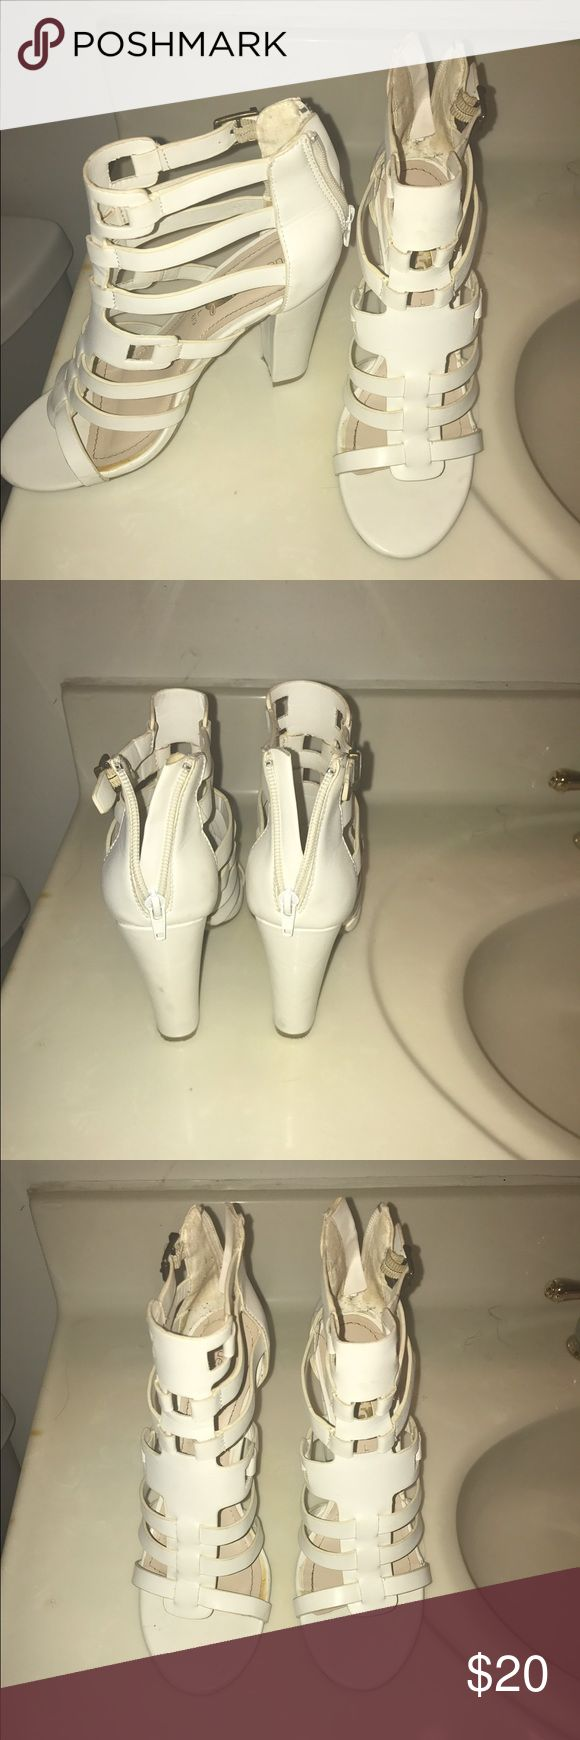 White Rue21 heels White , worn a few times , very fashionable heels Rue 21 Shoes Heeled Boots